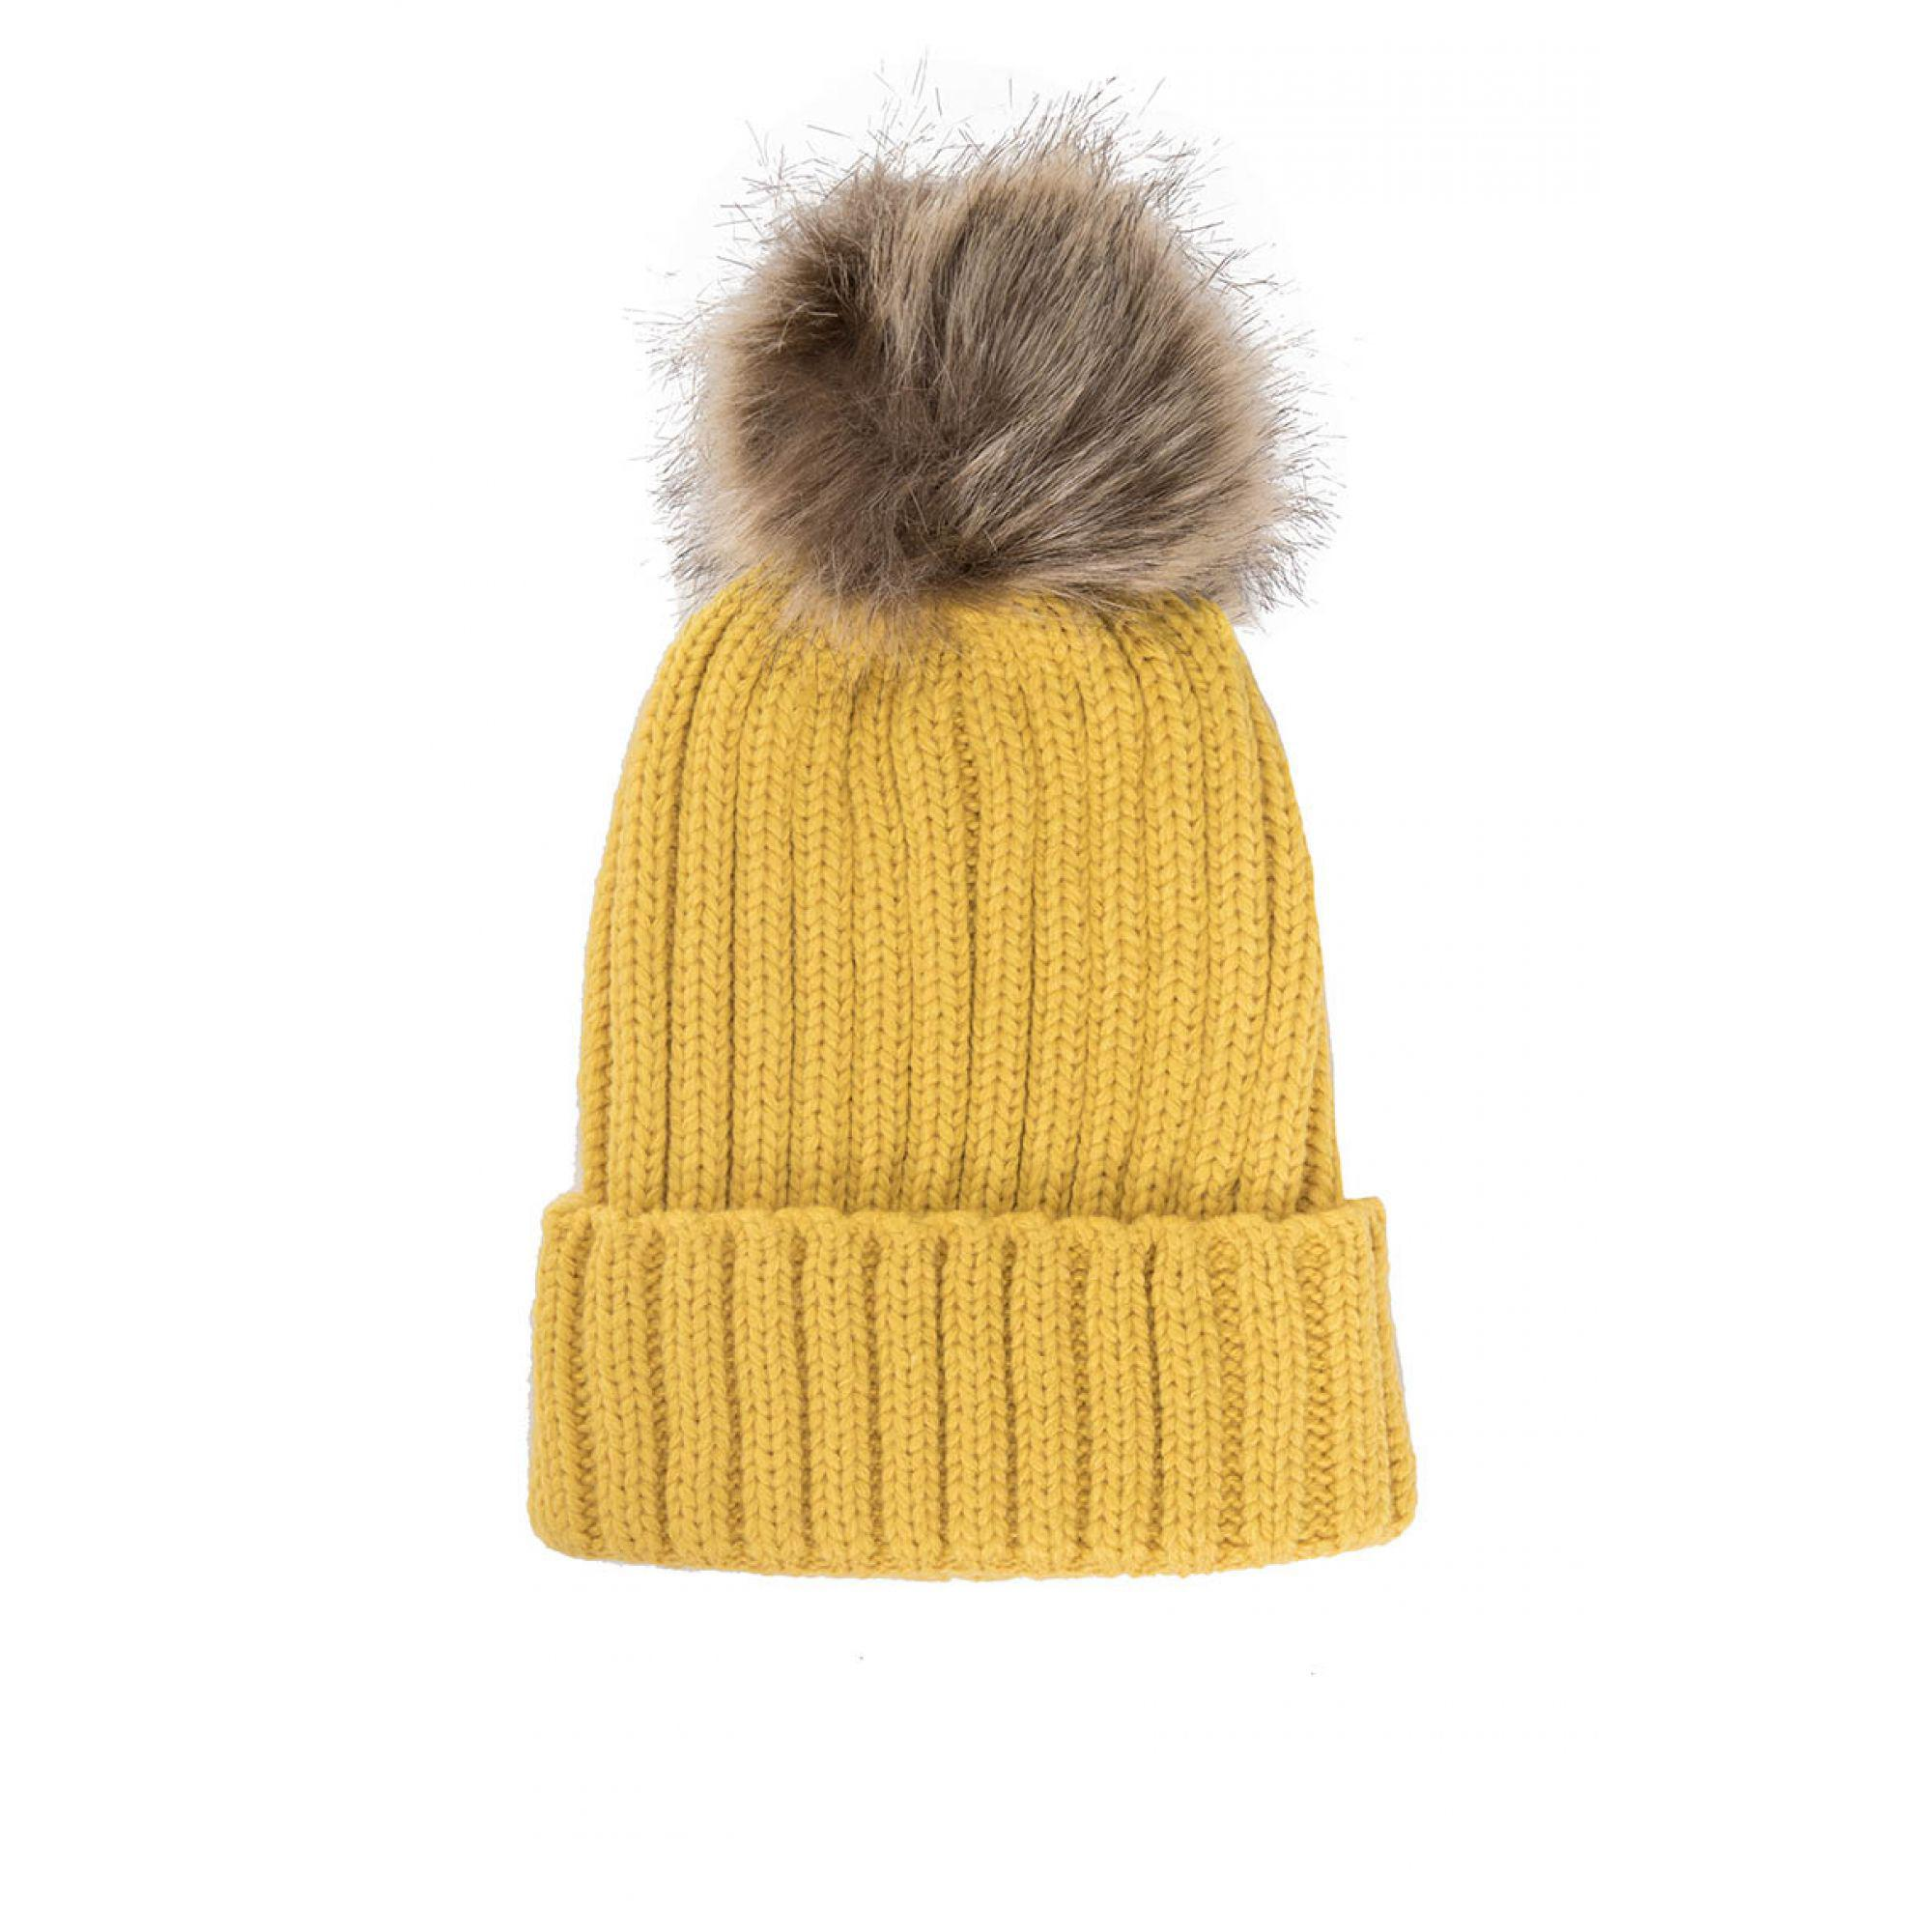 e5a1d7a6eeb Quiz Mustard Knitted Contrast Pom Pom Hat in Yellow - Lyst